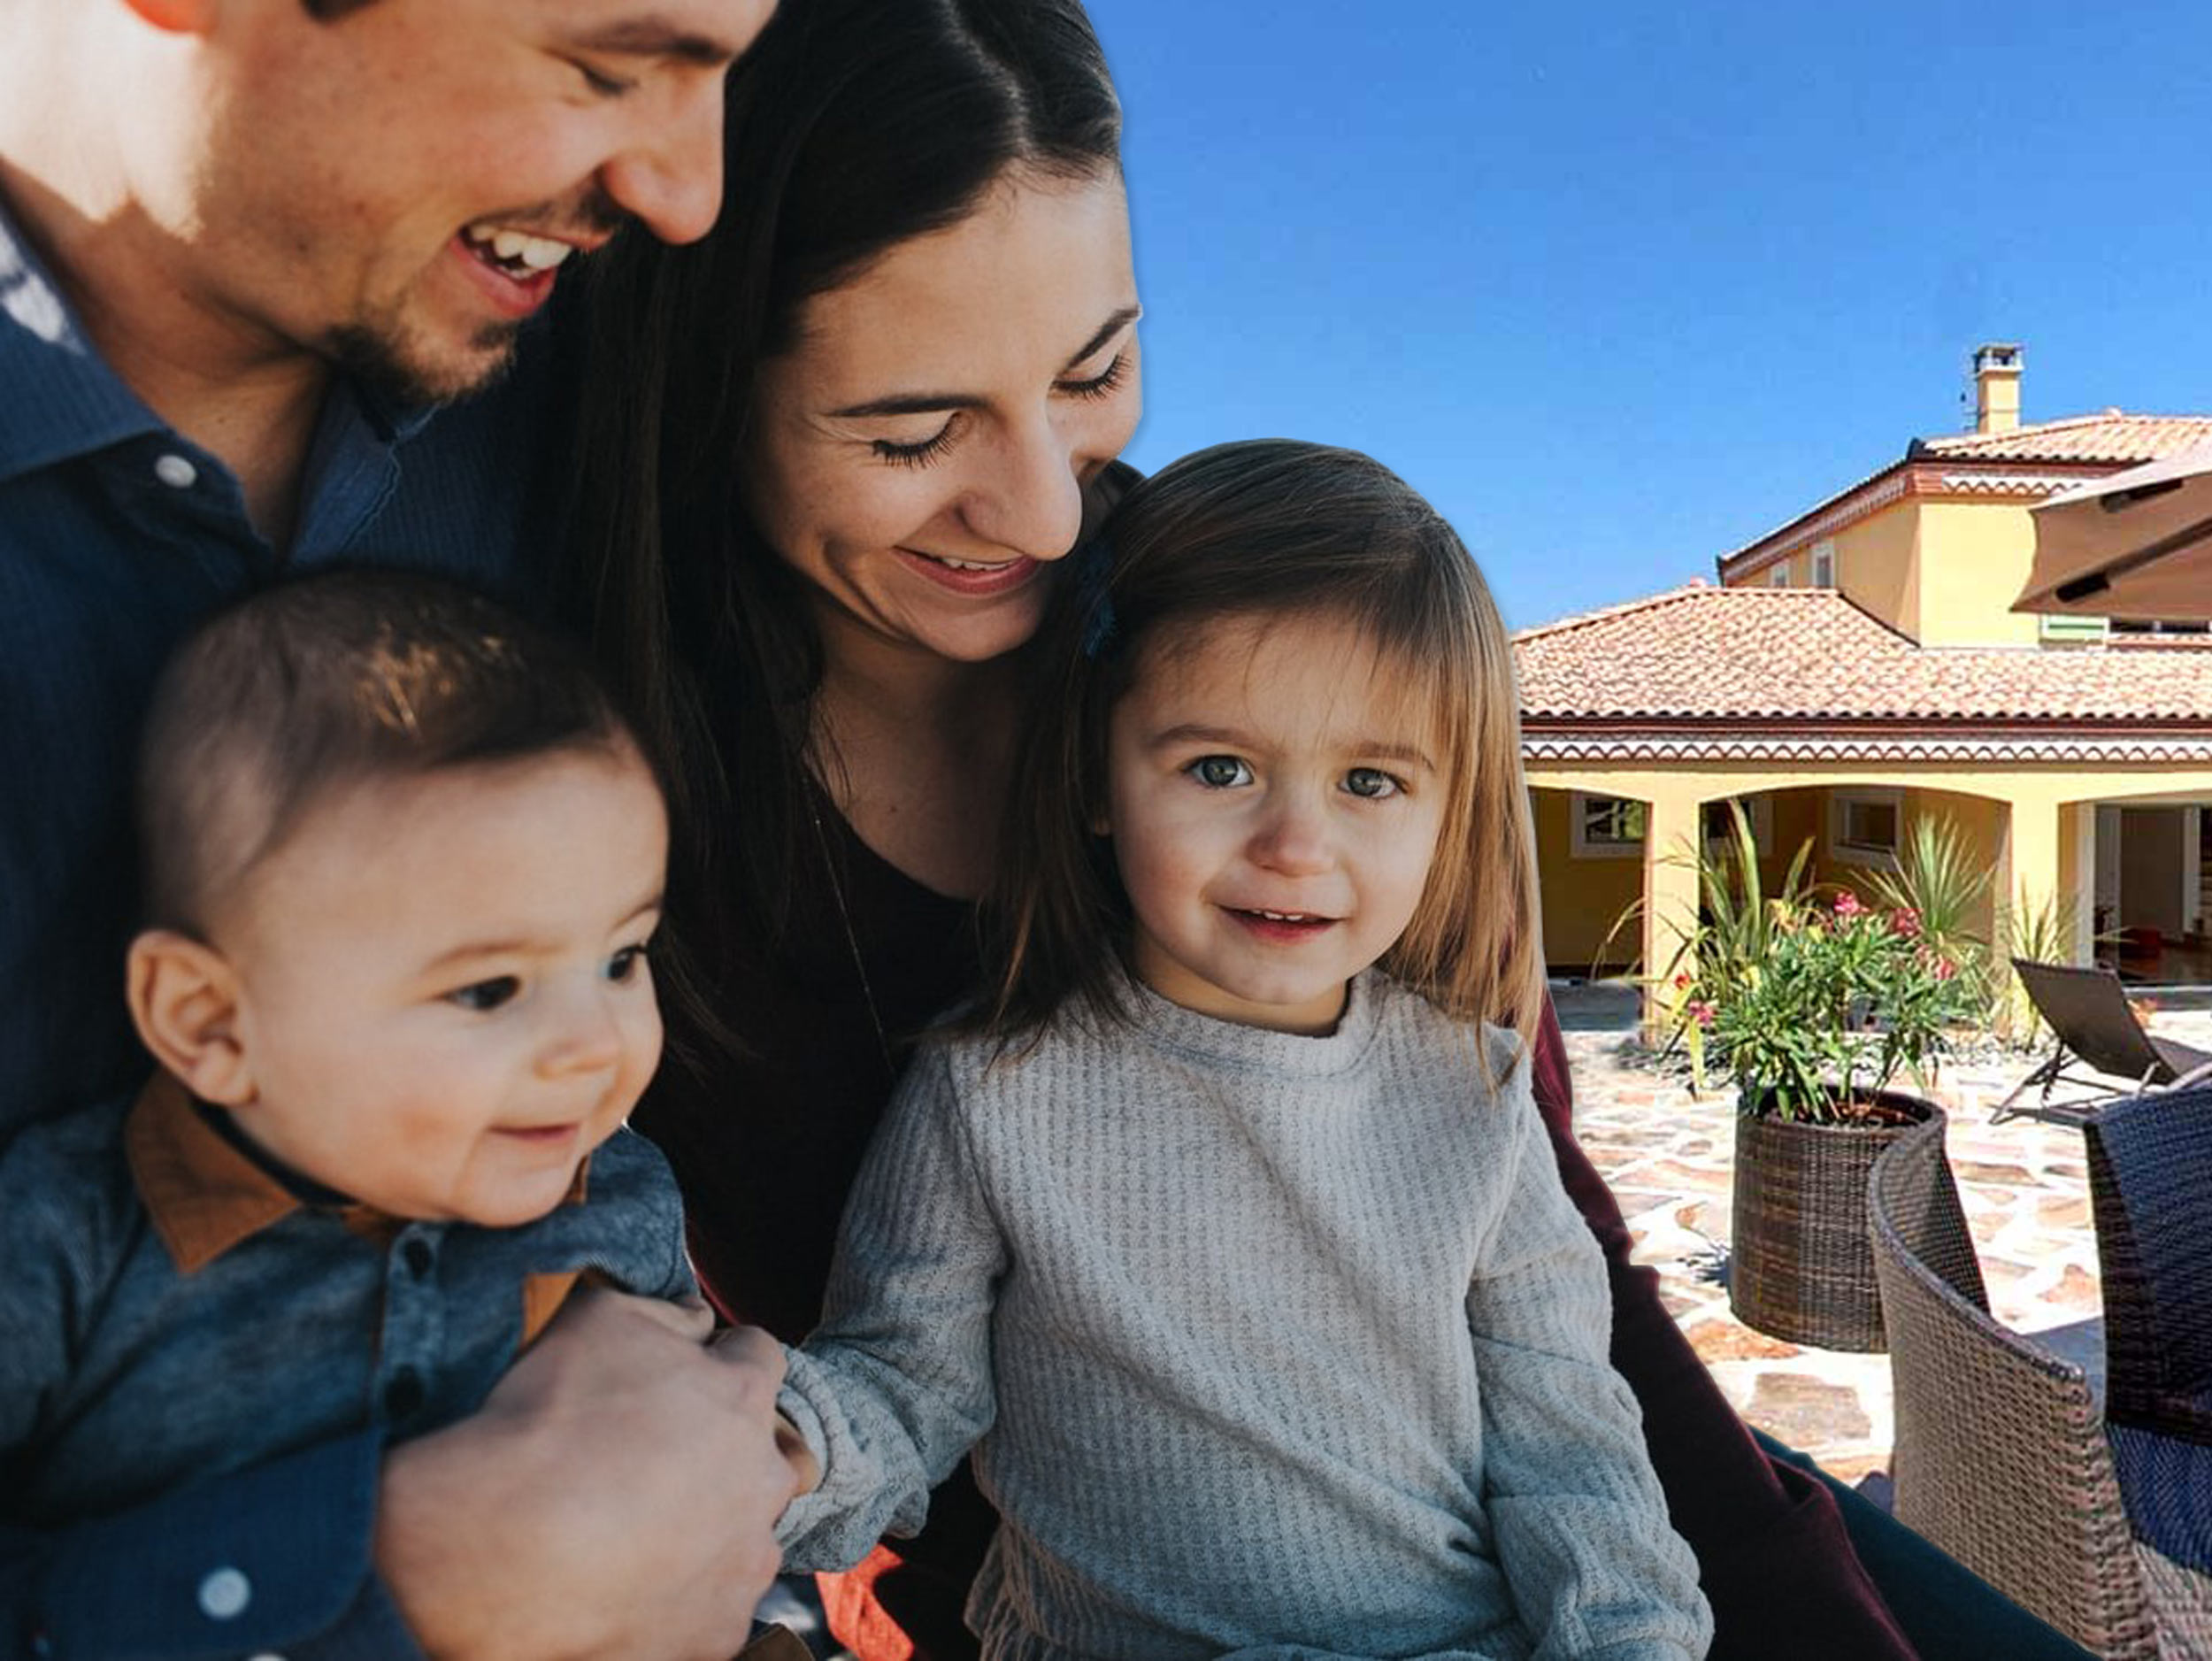 chambre-hote-toulouse-sejour-famille